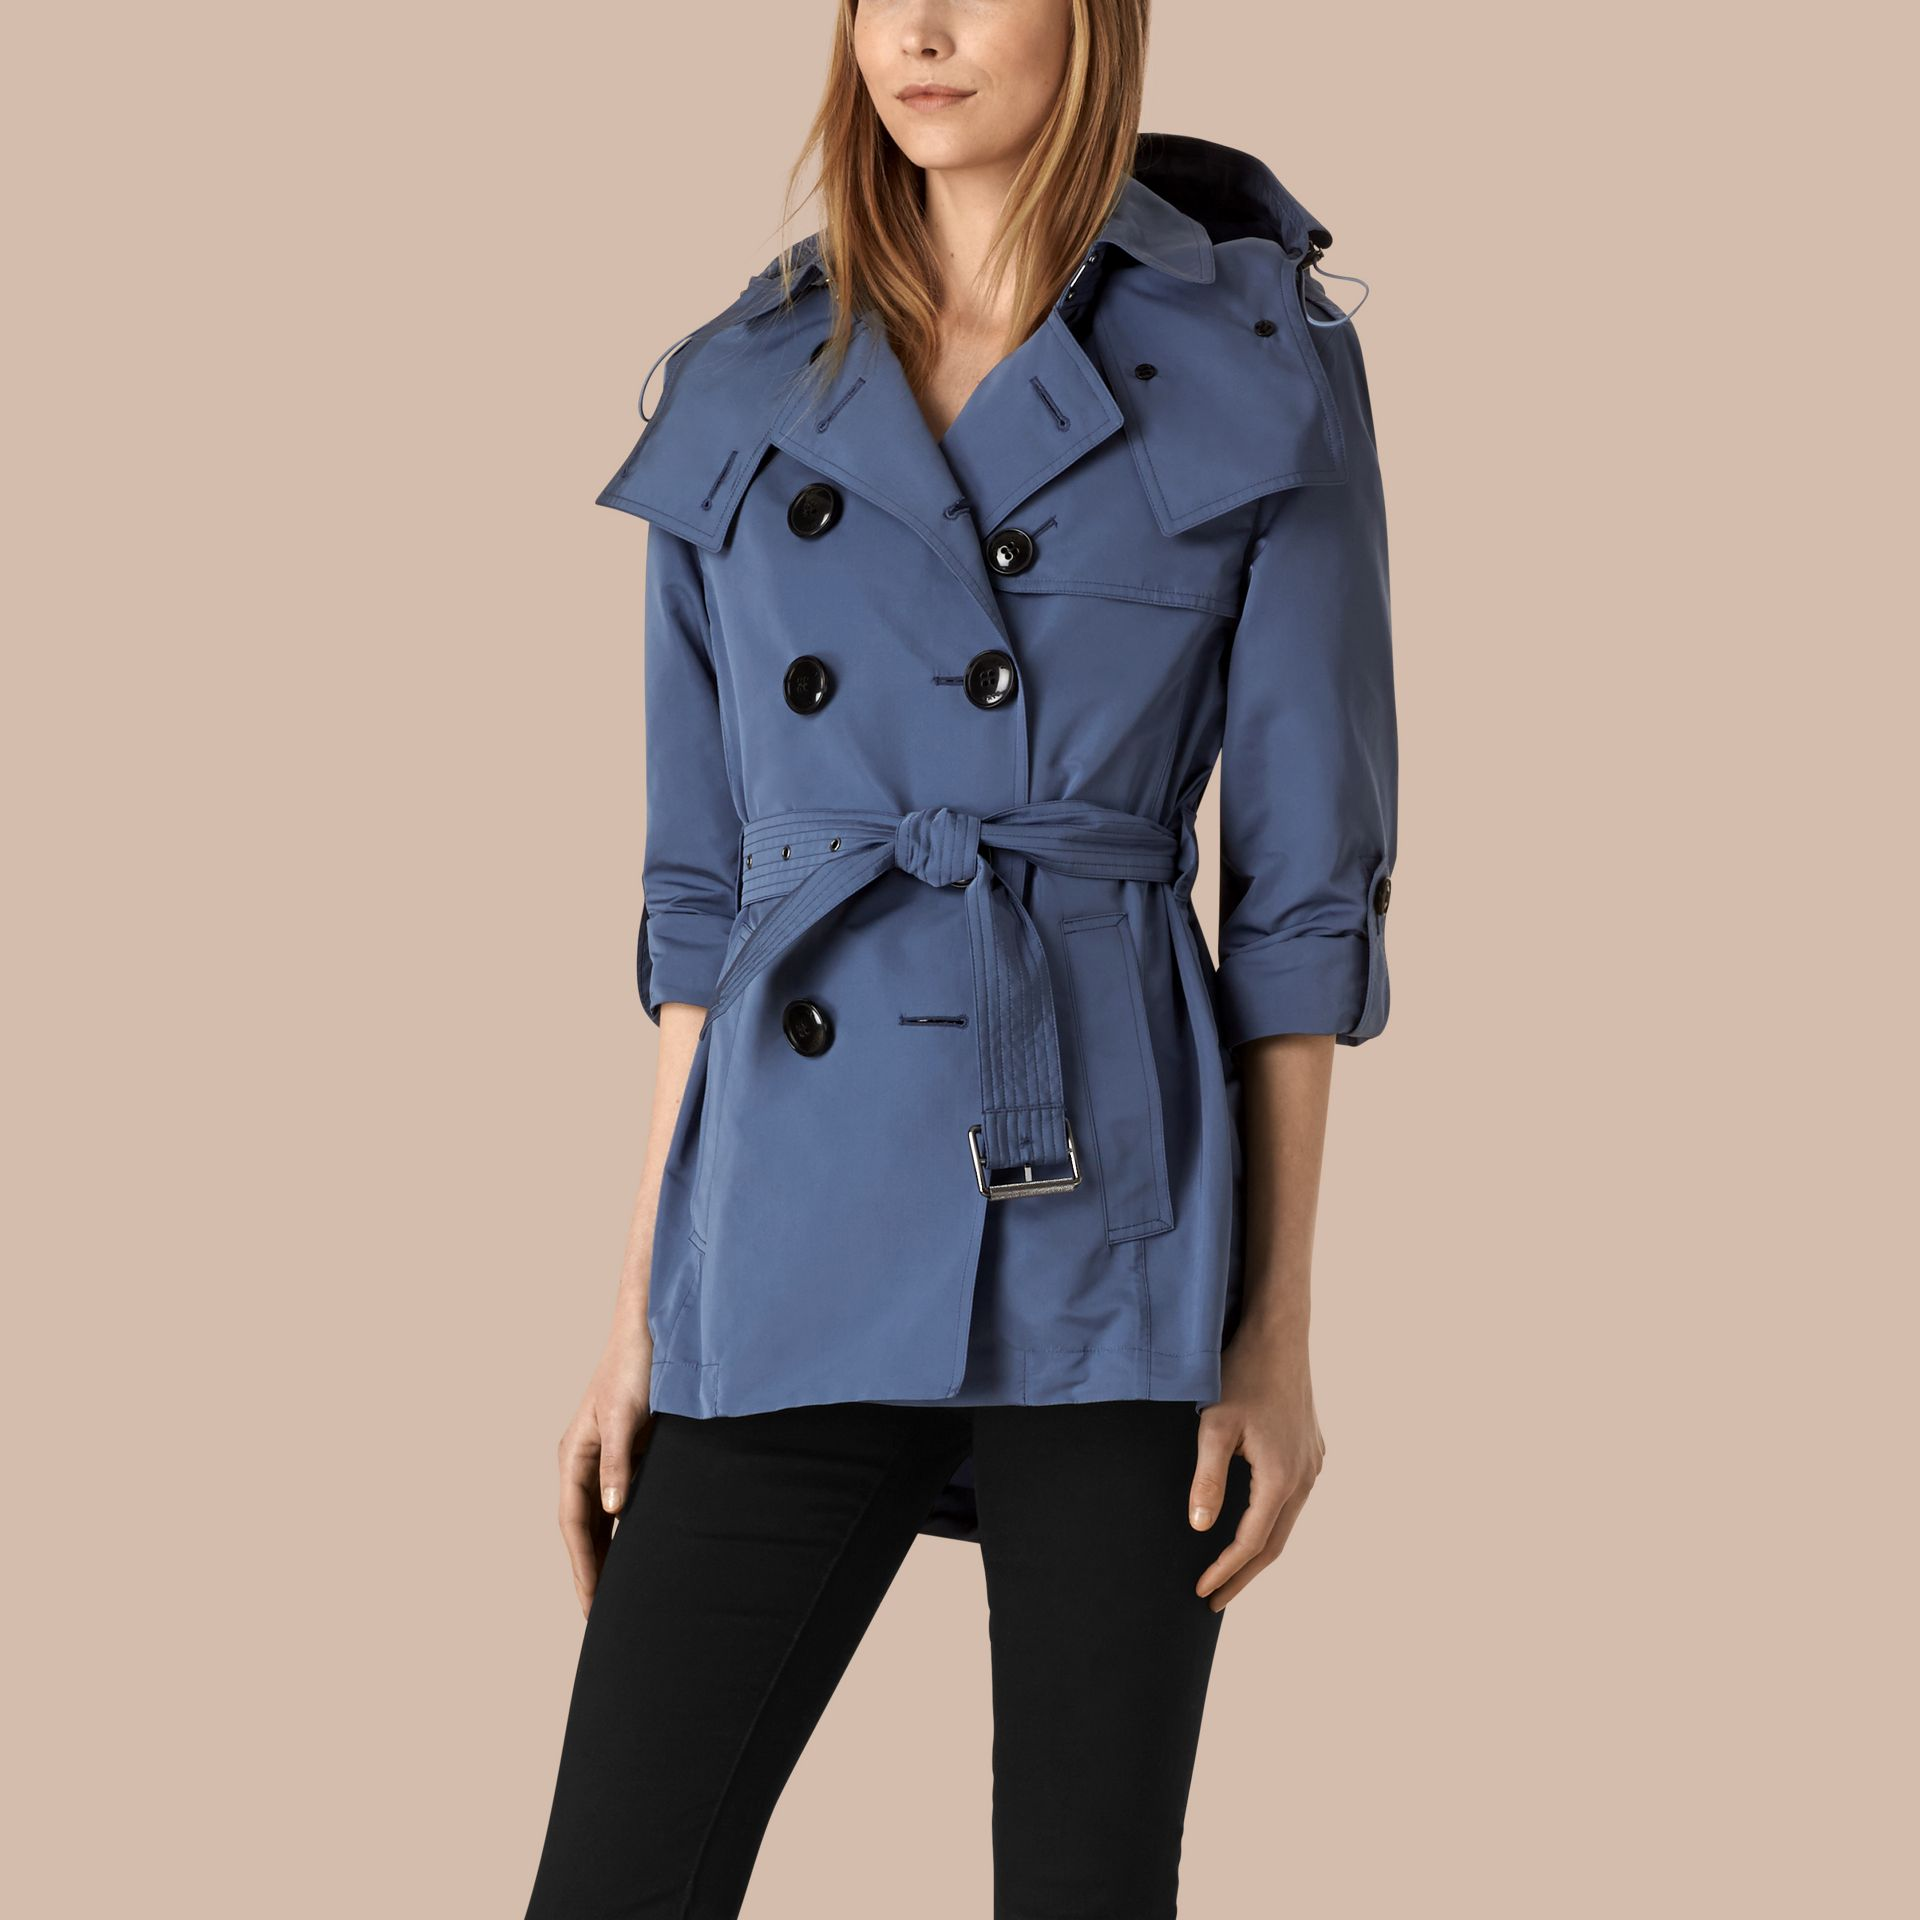 Pale lupin blue Showerproof Trench Coat with Detachable Hood Pale Lupin Blue - gallery image 3